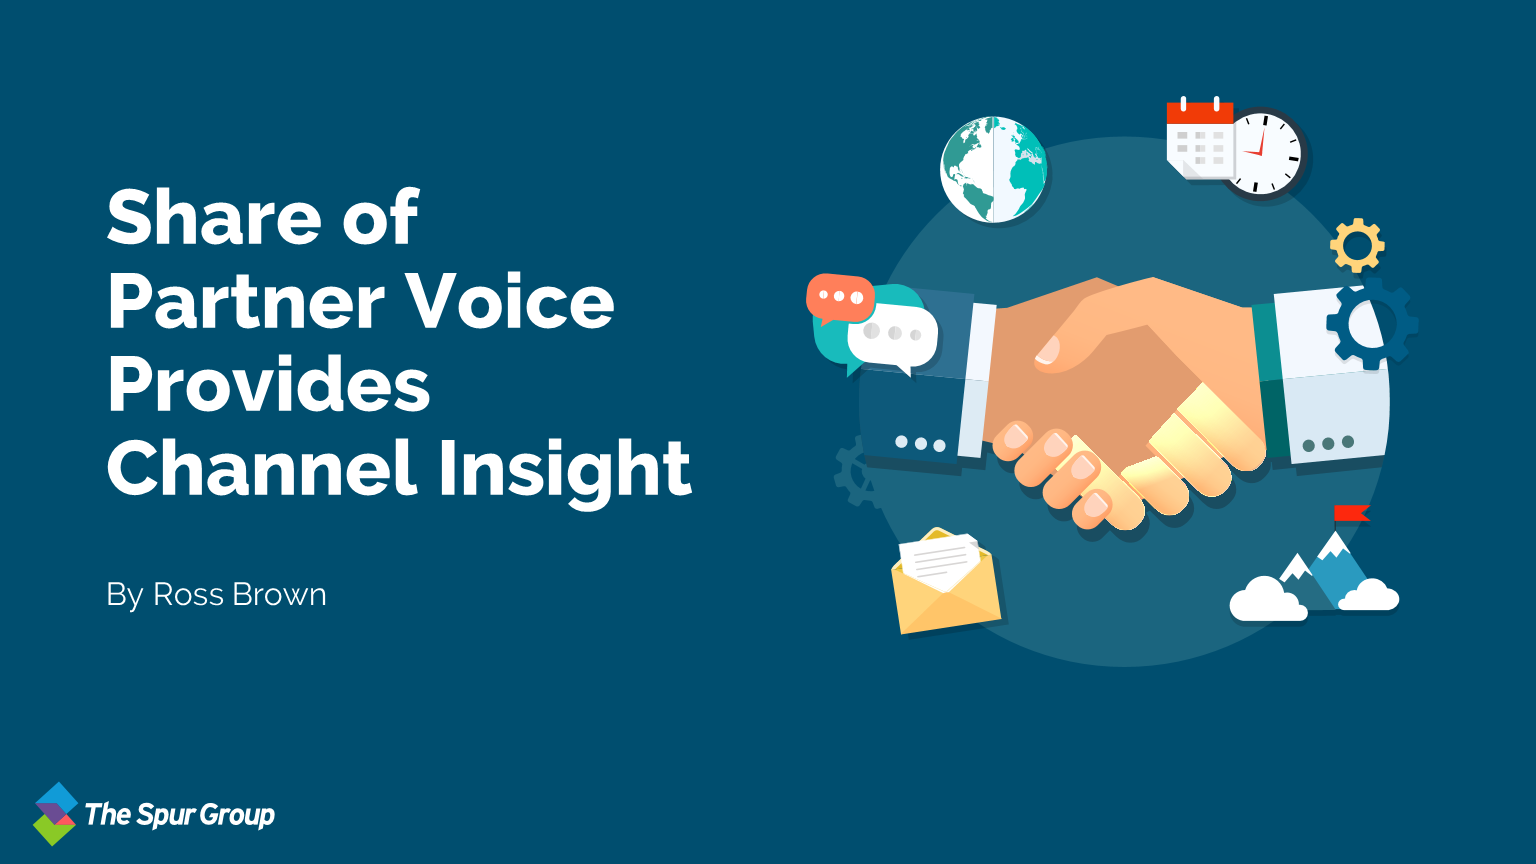 Share Of Partner Voice Provides Channel Insight Featured Image